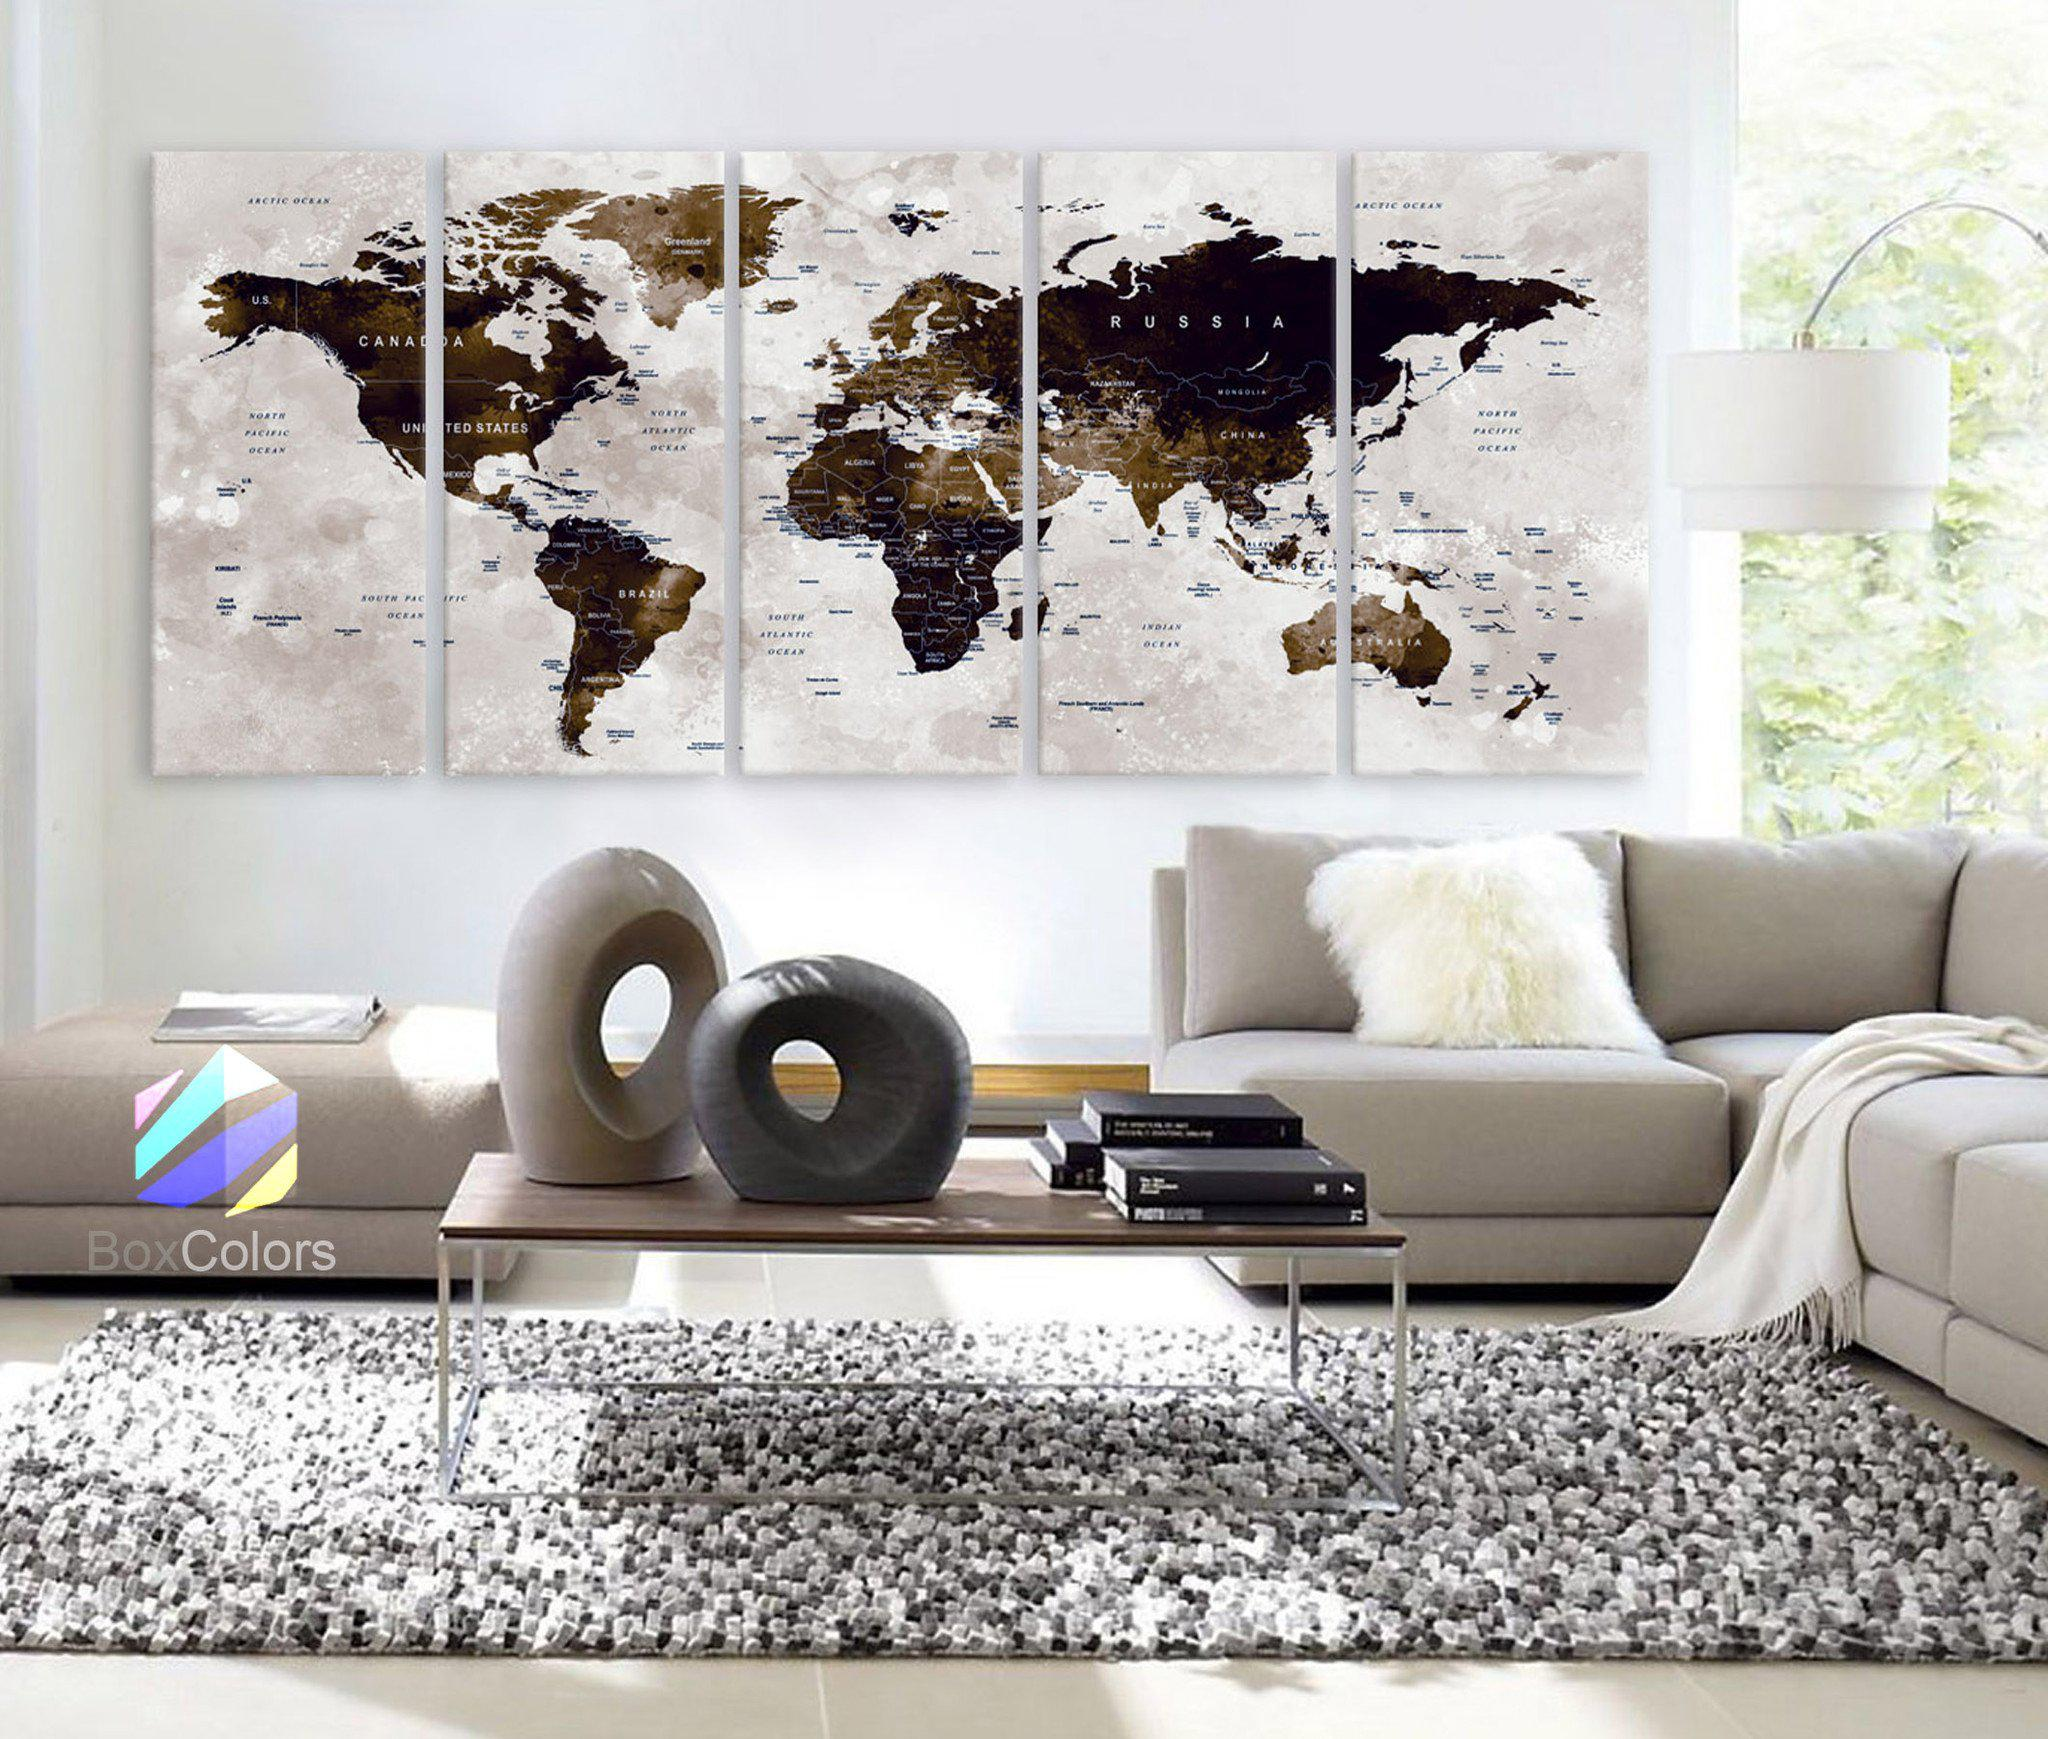 """Image of XLARGE 30"""" x 70"""" 5 Panels Art Canvas Print Watercolor Map World Push Pin Travel Wall color Brown beige decor Home interior (framed 1.5"""" depth)"""